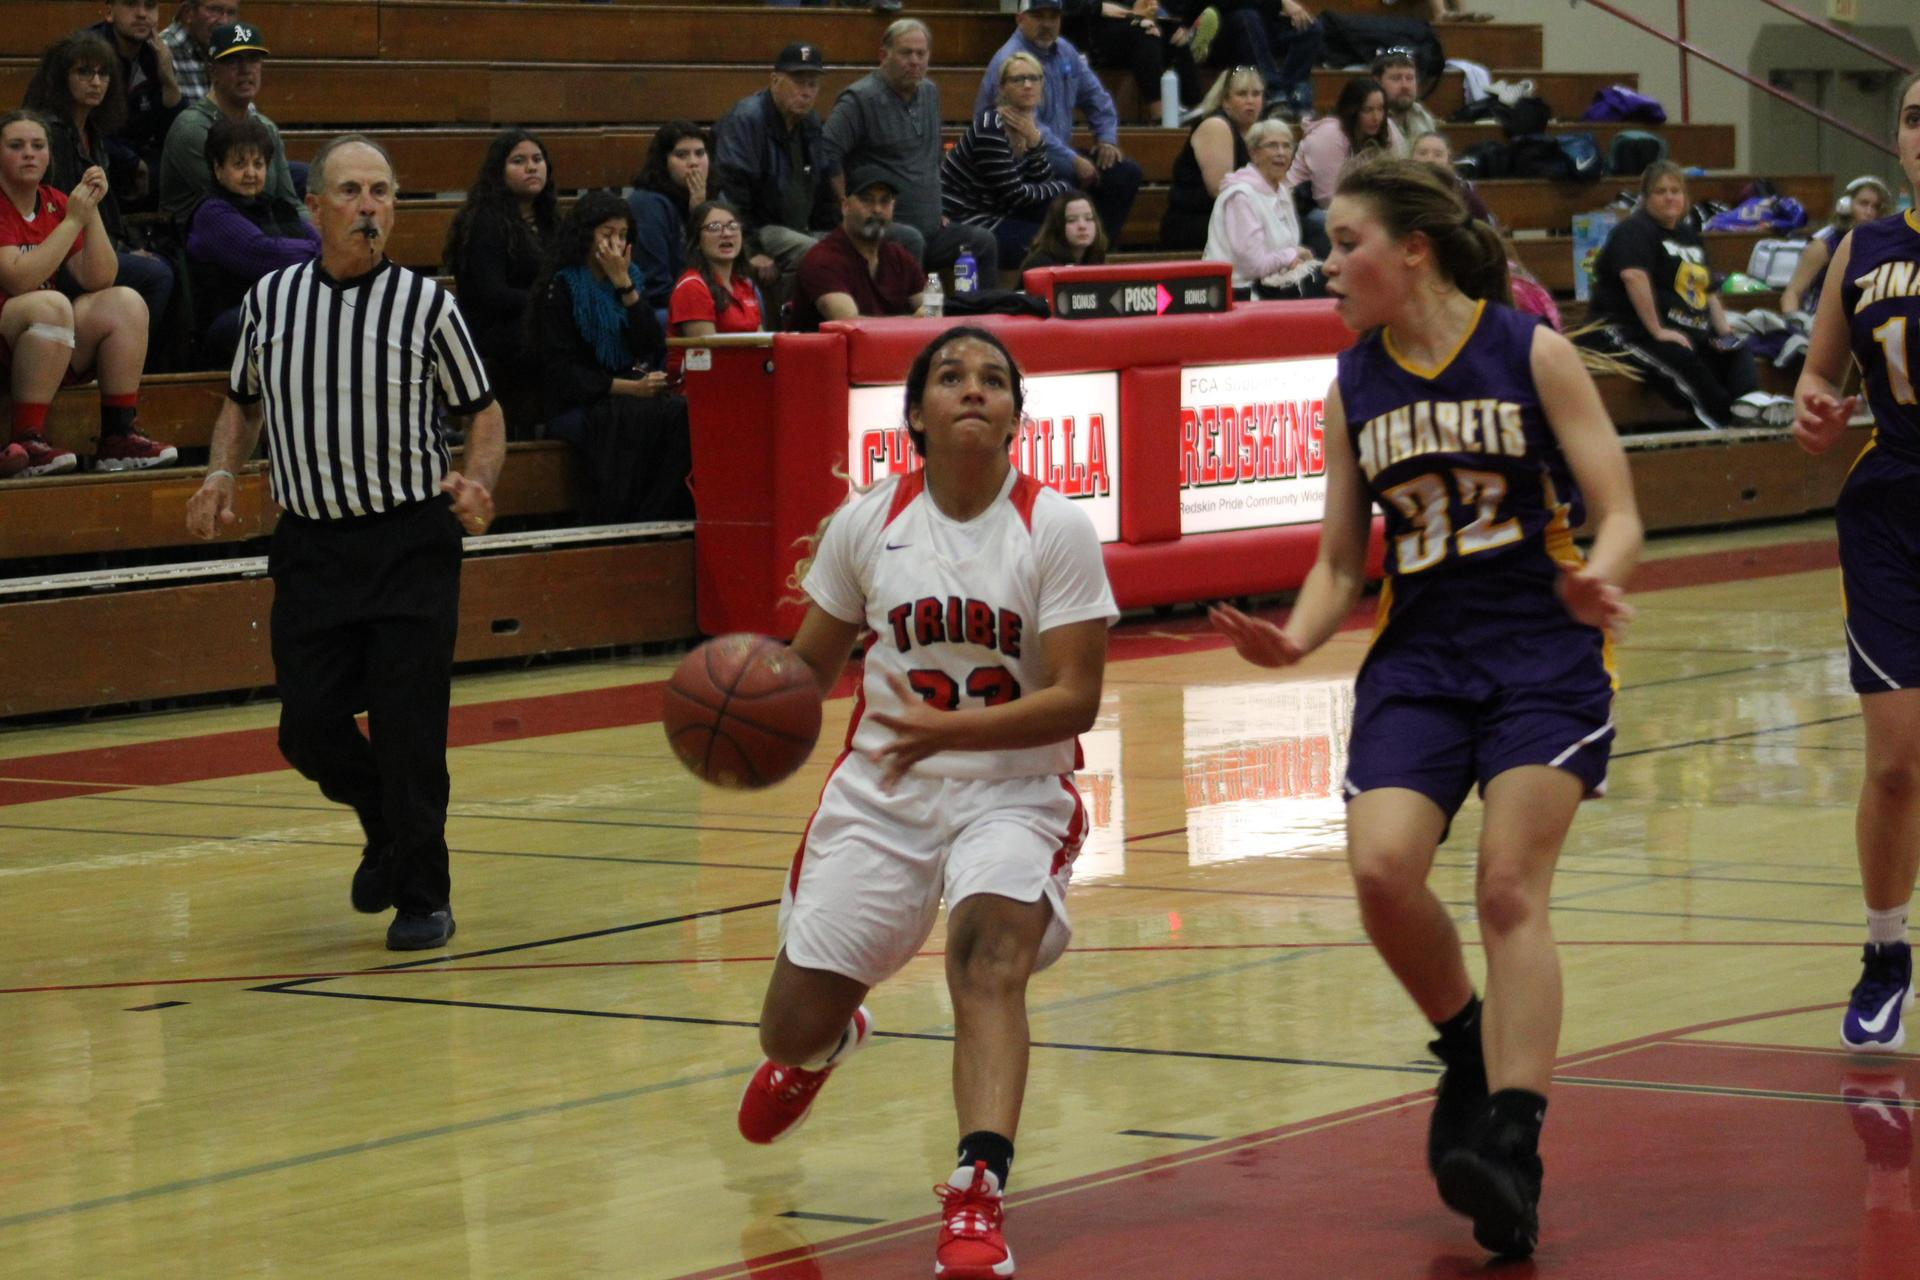 Kadenyce Boyett dribbling the ball